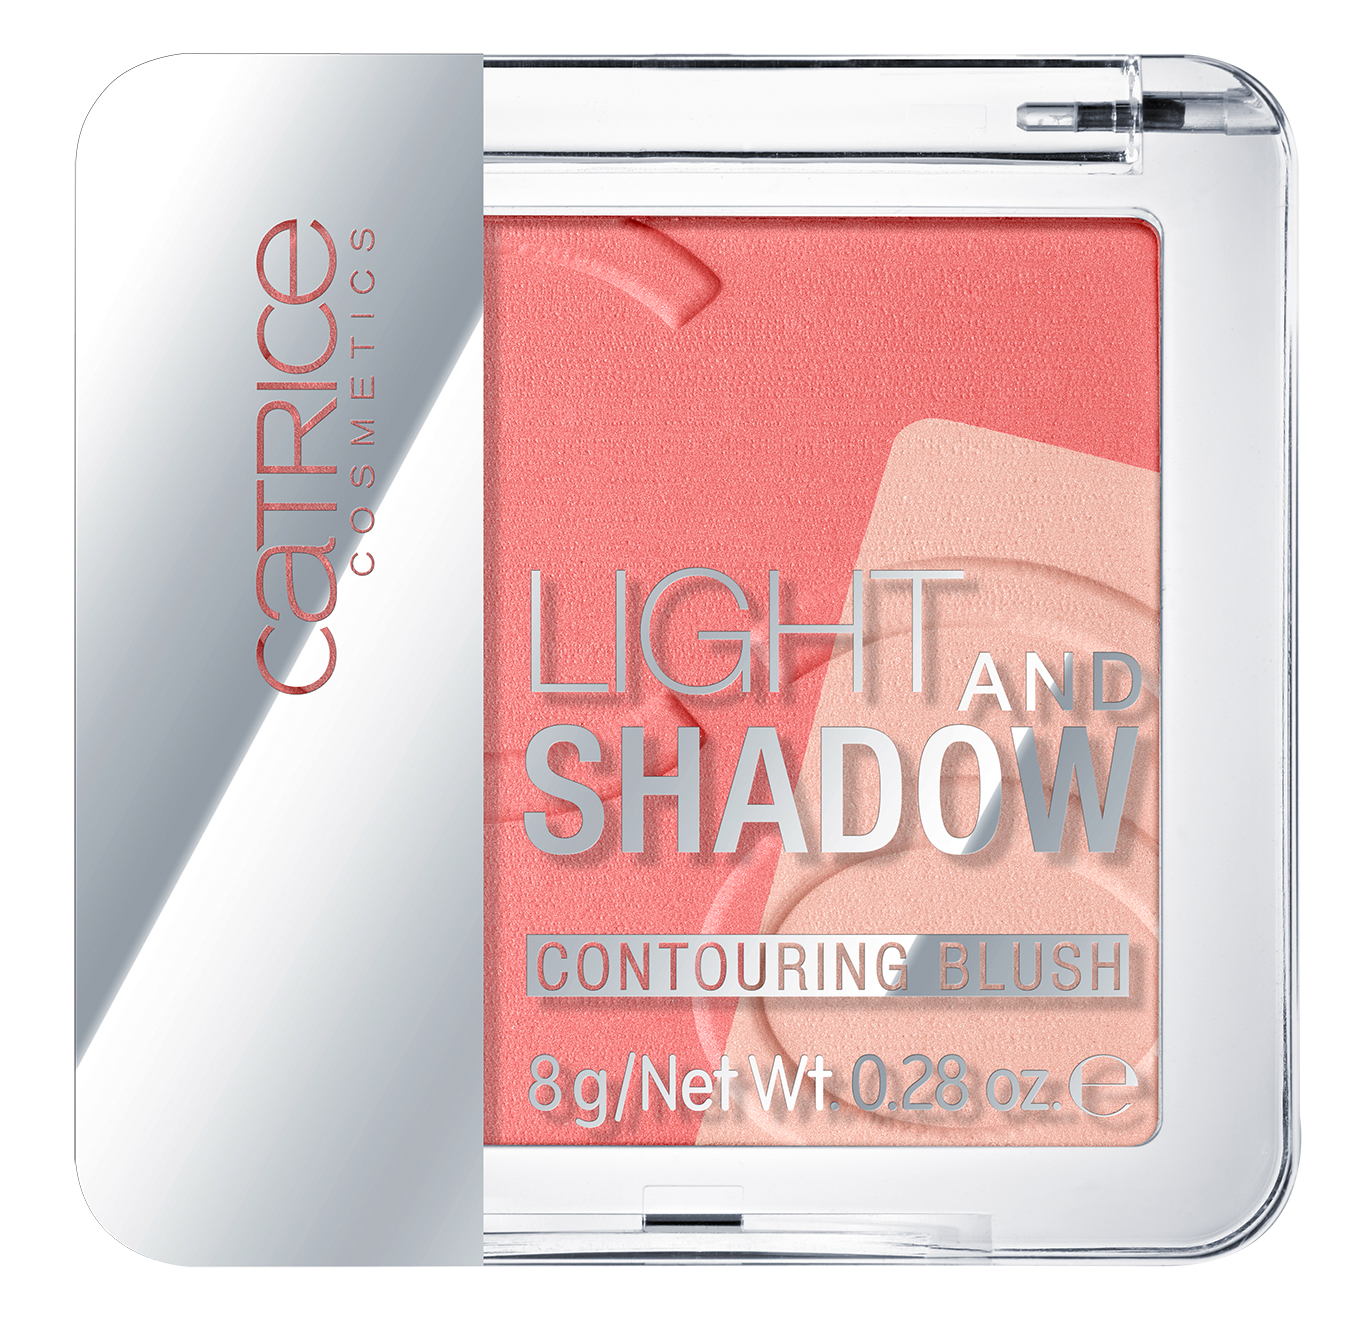 coca55-04b-it-pieces-by-catrice-light-and-shadow-contouring-blush-nr-020-a-flamingo-in-santo-domingo